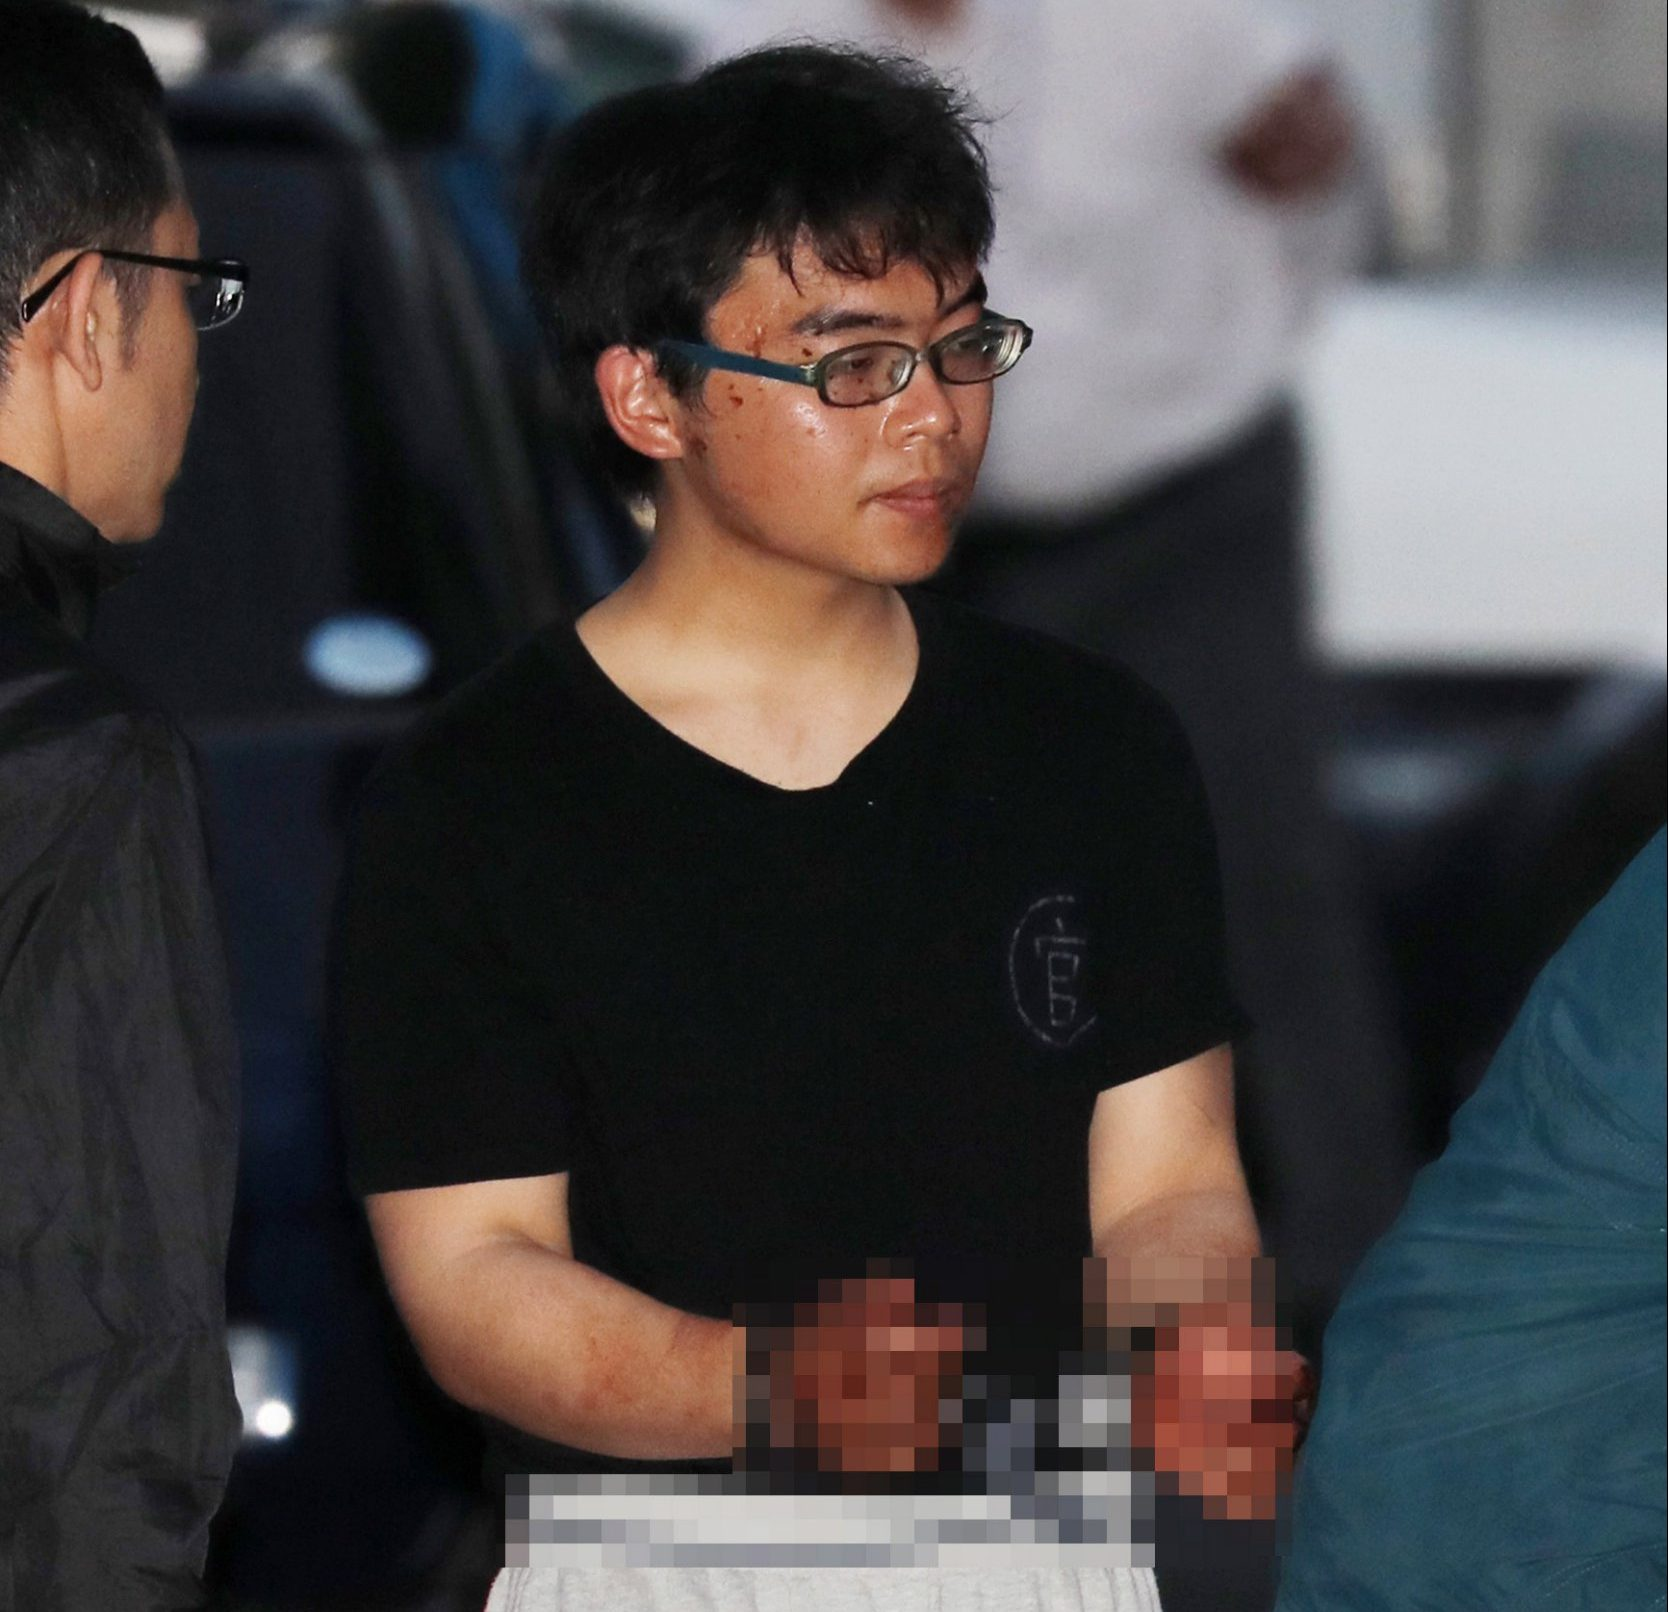 epa06797954 Japanese suspect Ichiro Kojima leaves the Odawara Police Station in Odawara, Japan, 10 June 2018. Kojima allegedly stabbed three people on a bullet train, killing one and injuring two. The 22-year-old man was arrested by police after the bullet train made an emergency stop in Odawara station. EPA/JIJI PRESS JAPAN OUT / IMAGE PIXIELATED AT SOURCE EDITORIAL USE ONLY/NO SALES/NO ARCHIVES